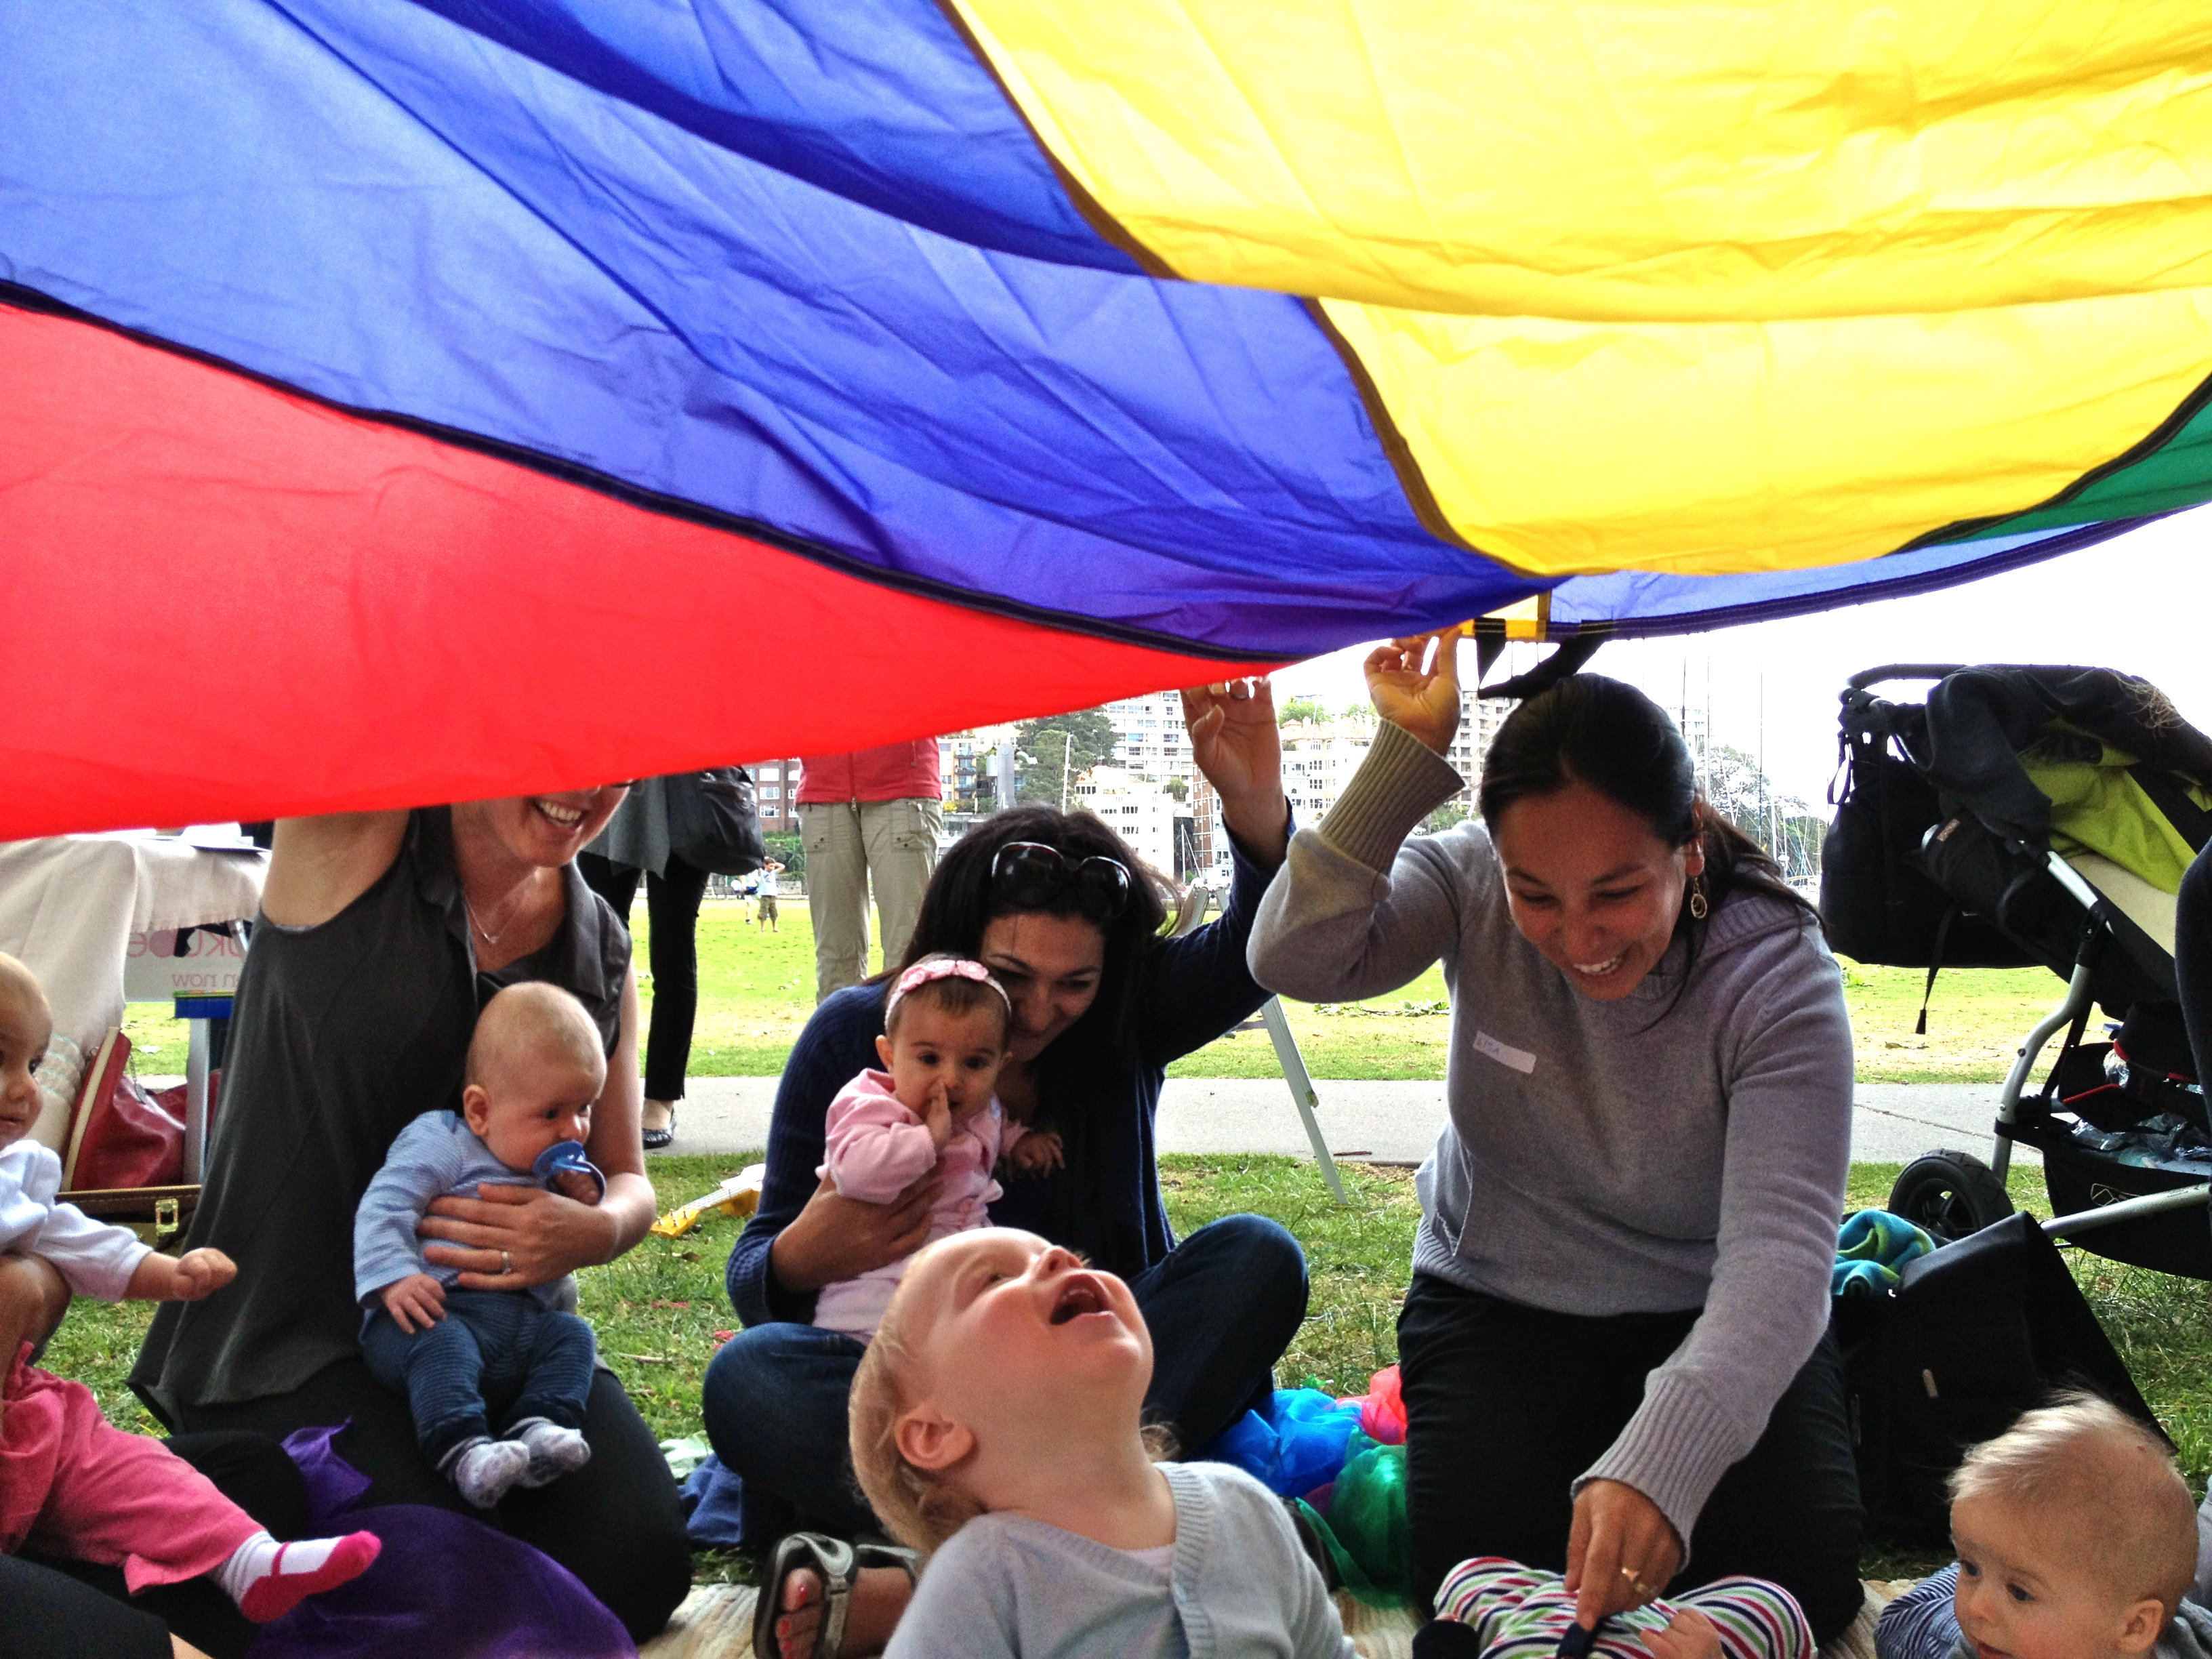 Image 08 'Shoo fly' song with the parachute…loads of fun!